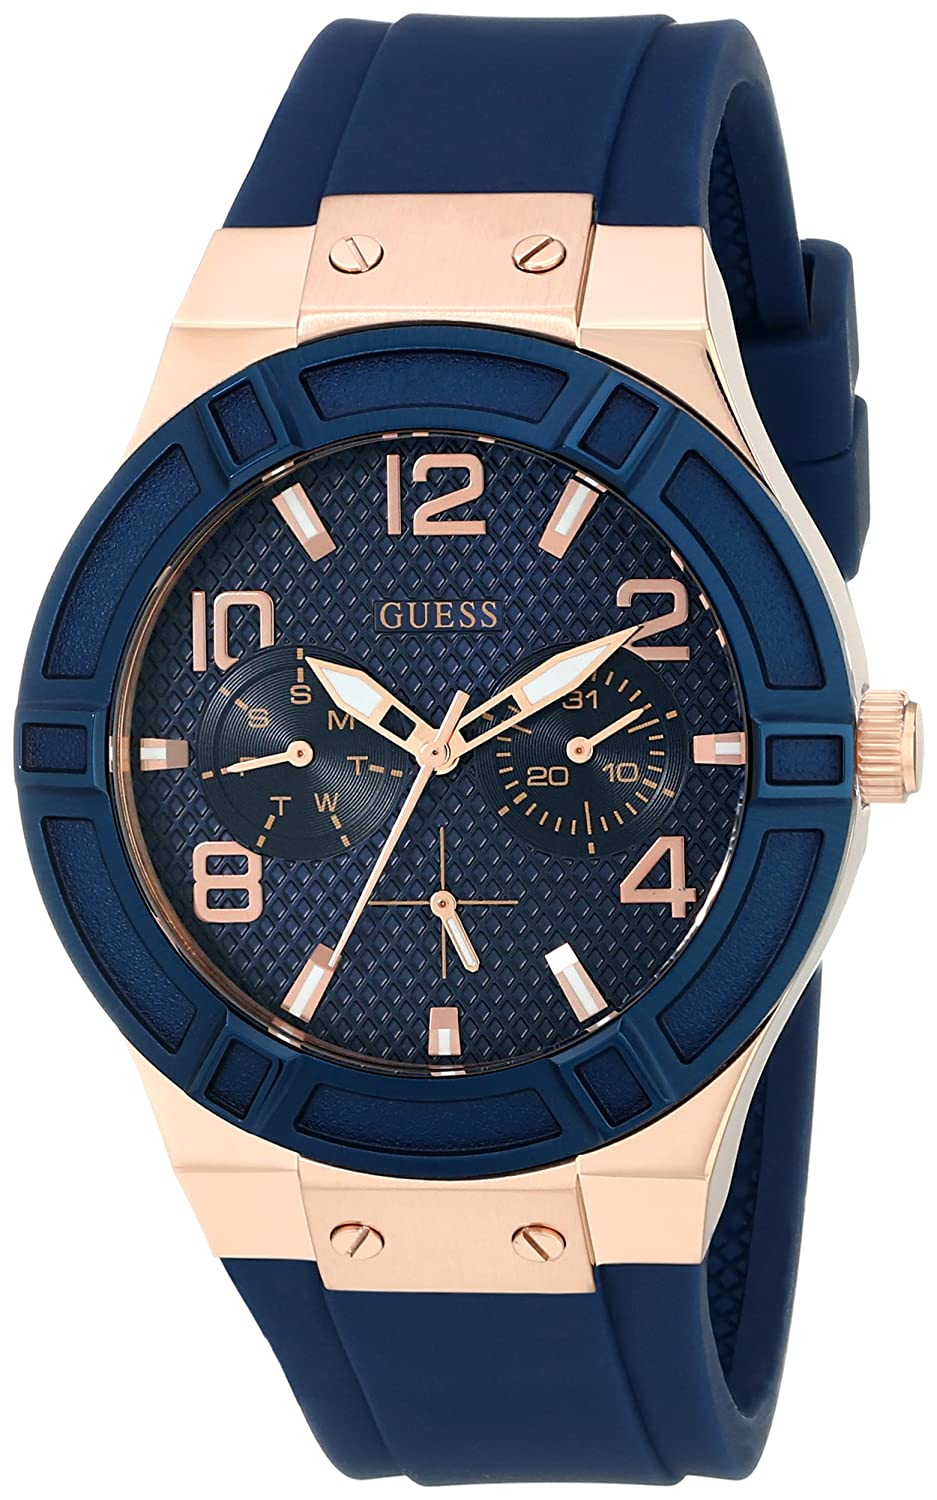 CDM product GUESS Women's U0571L1 Sporty Rose Gold-Tone Stainless Steel Watch with Multi-Function Dial and Blue Strap Buckle big image